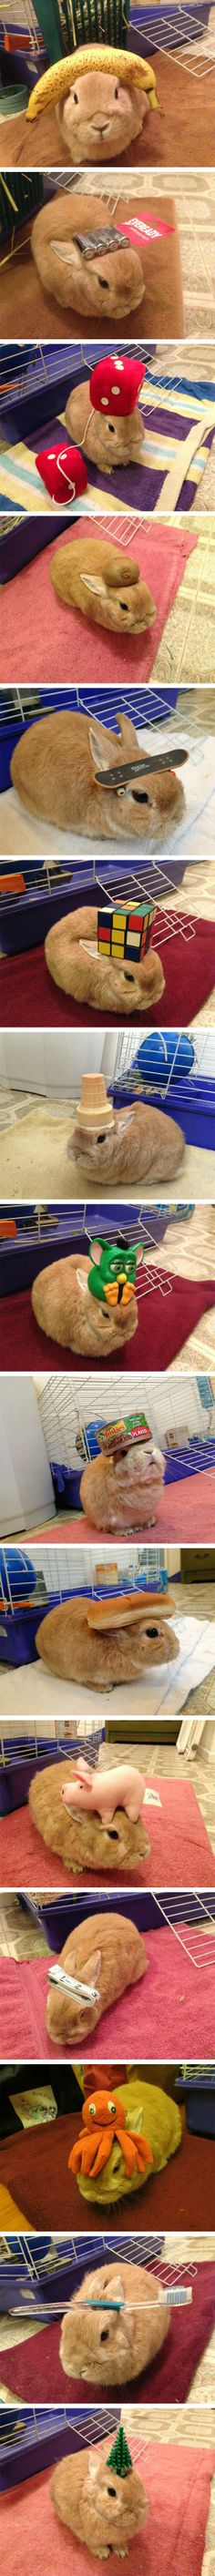 awww!! that's bunnies adorable!!